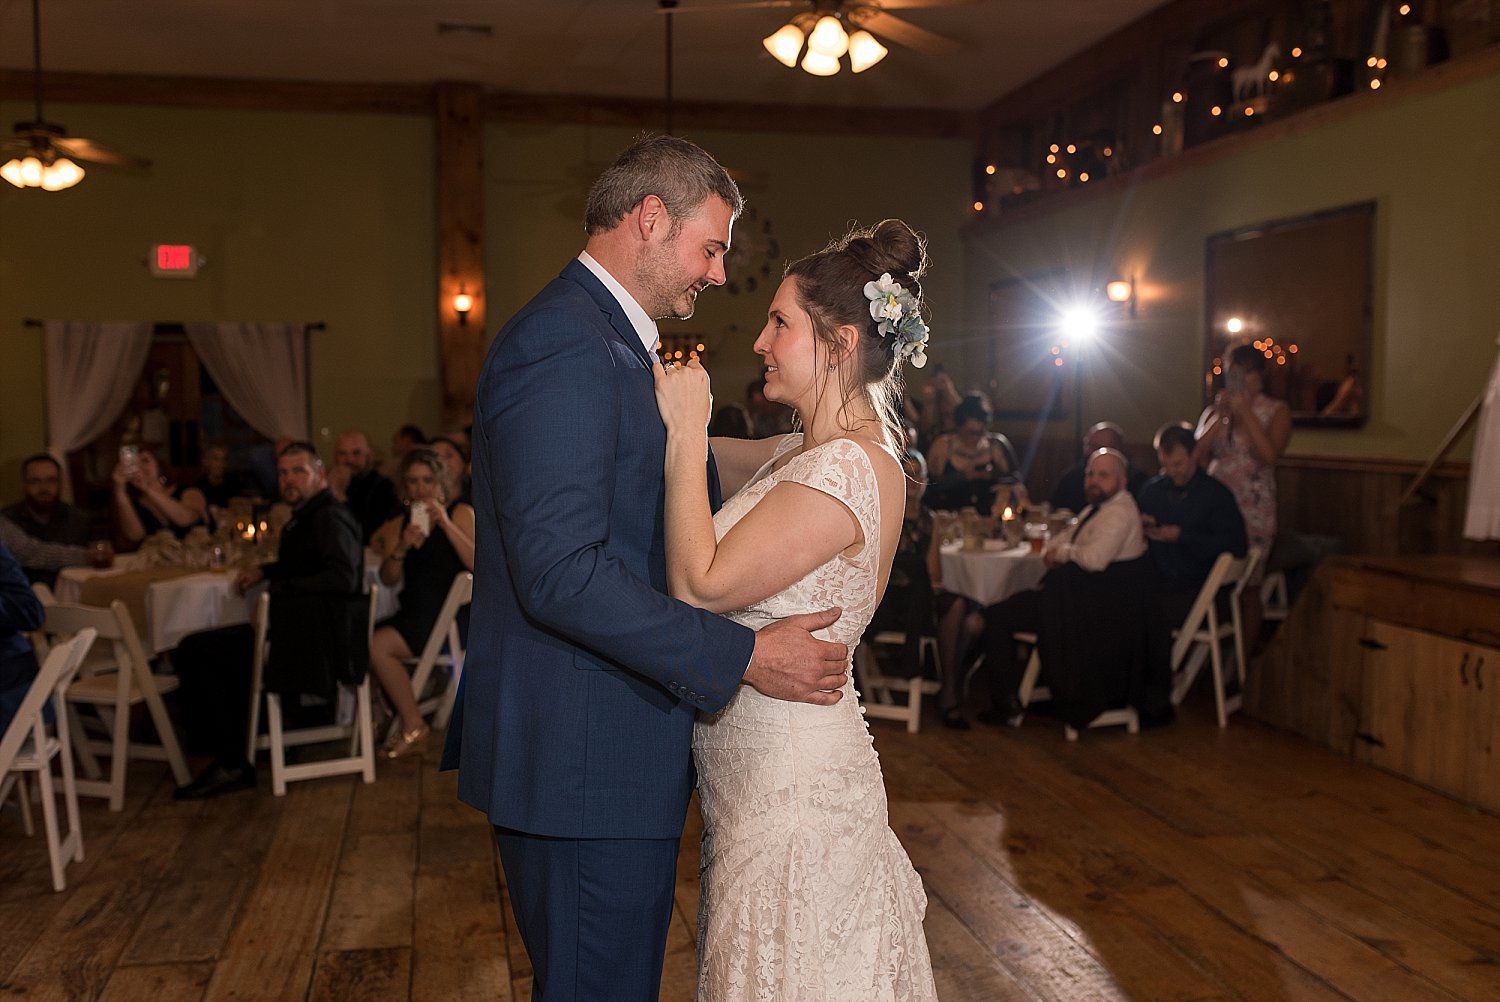 bride and groom first dance at wood acres farm wedding. connecticut photographer